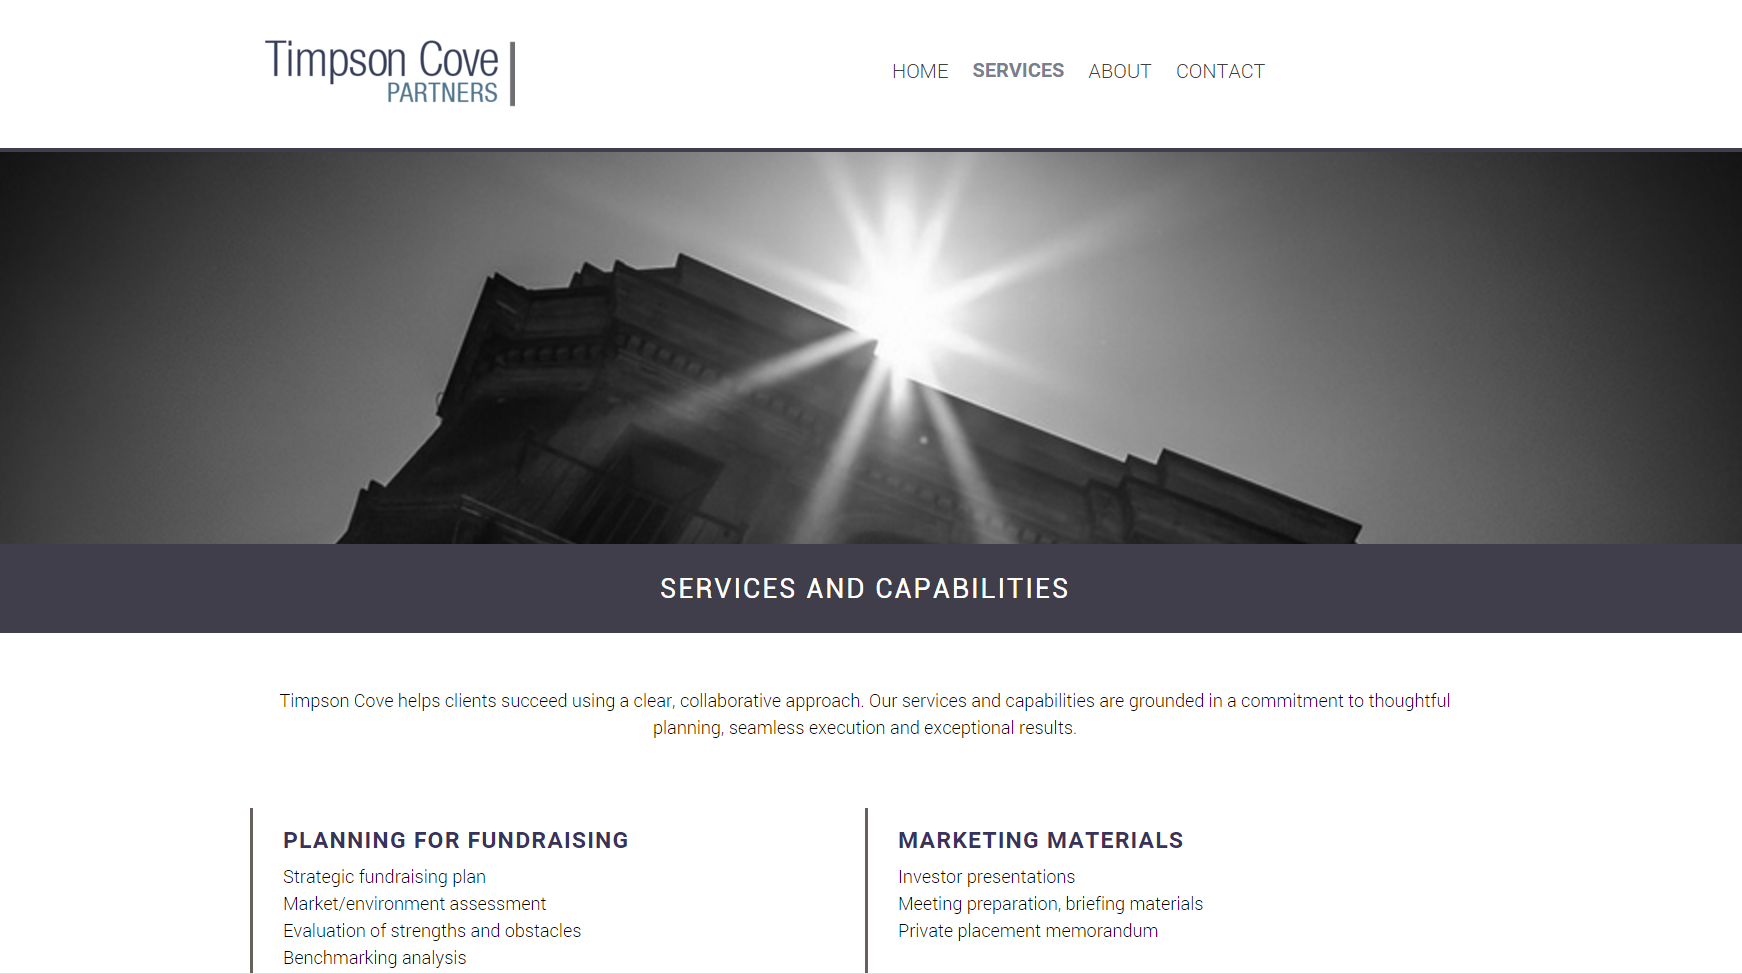 Timpson Cove Partners